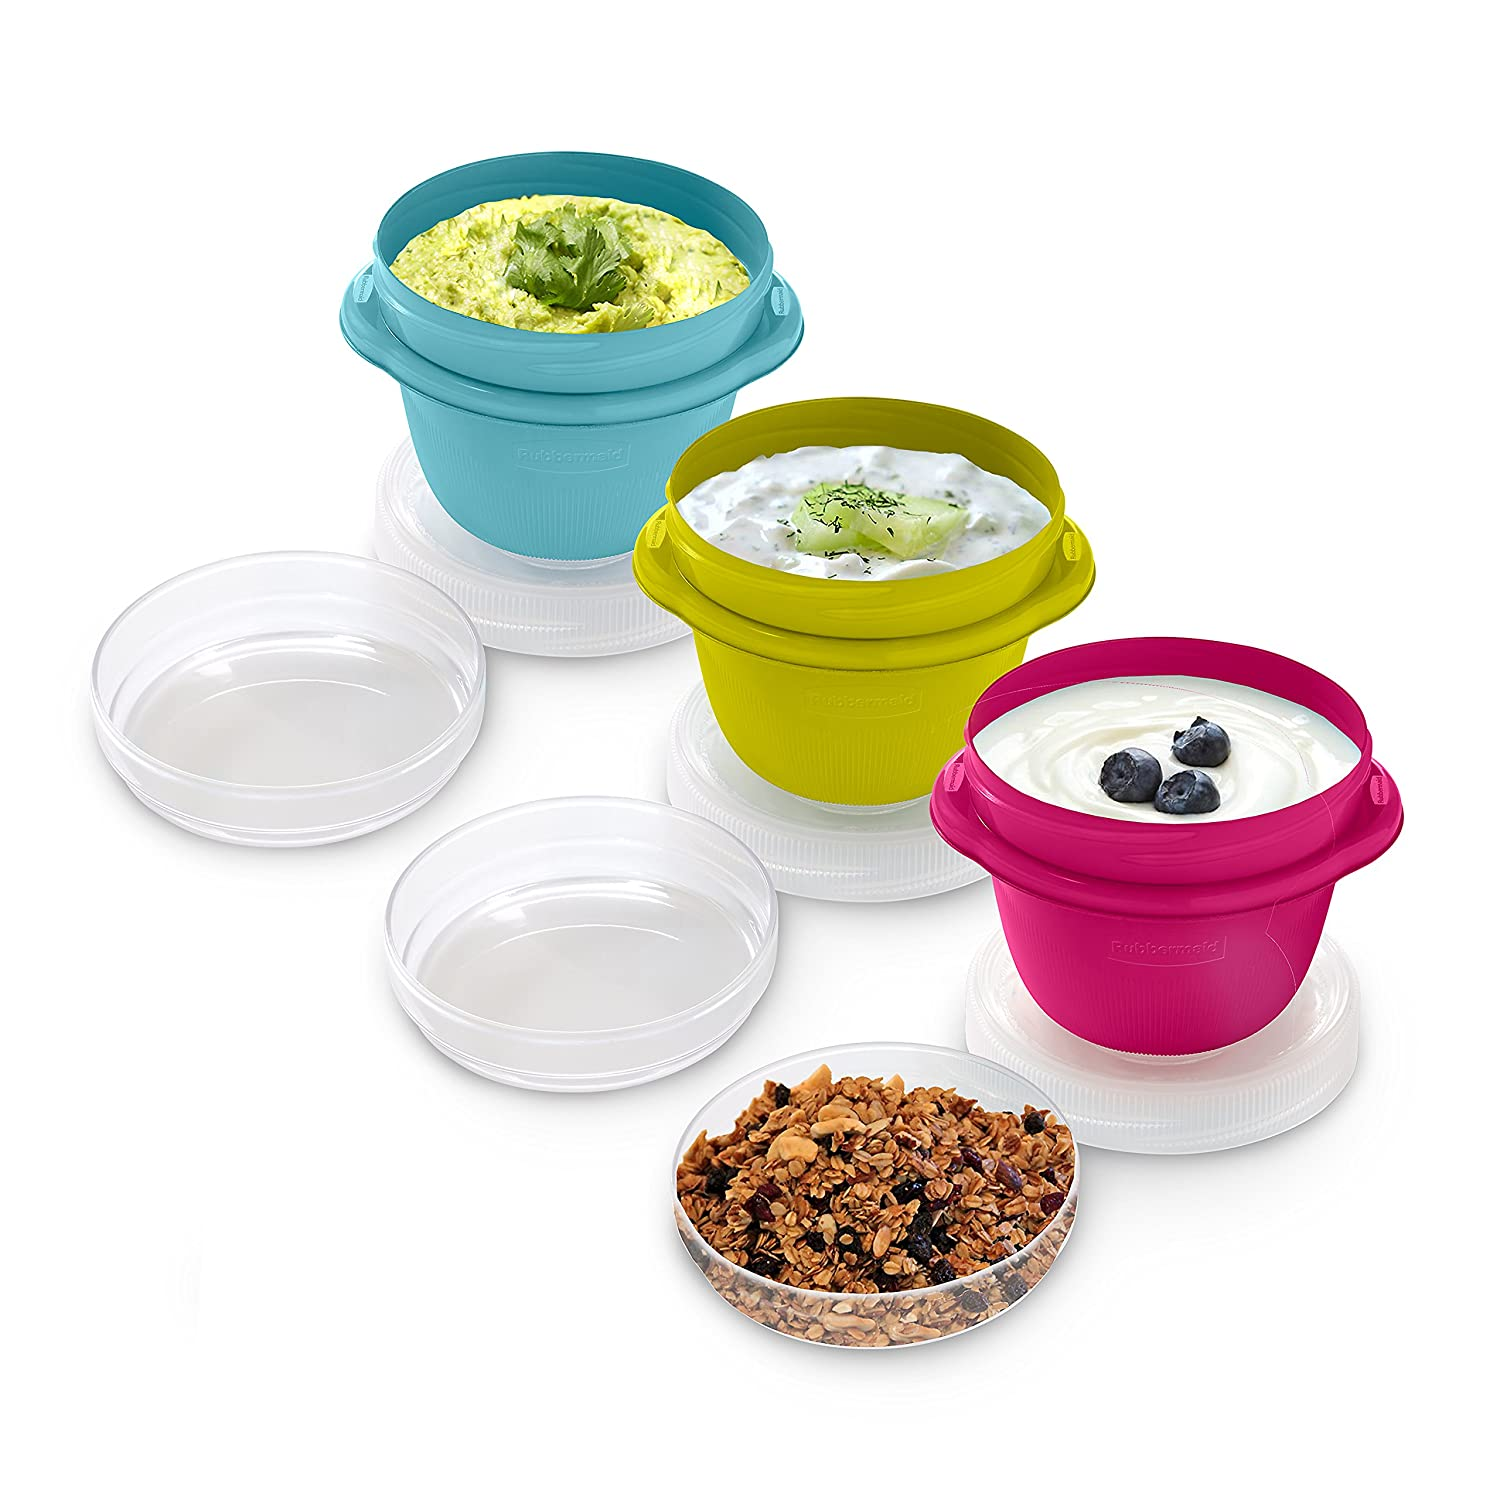 Rubbermaid 1.2 Cup Take Along On-the-Go Snack Food Storage Container (3 Pack), Assorted Colors 1967198